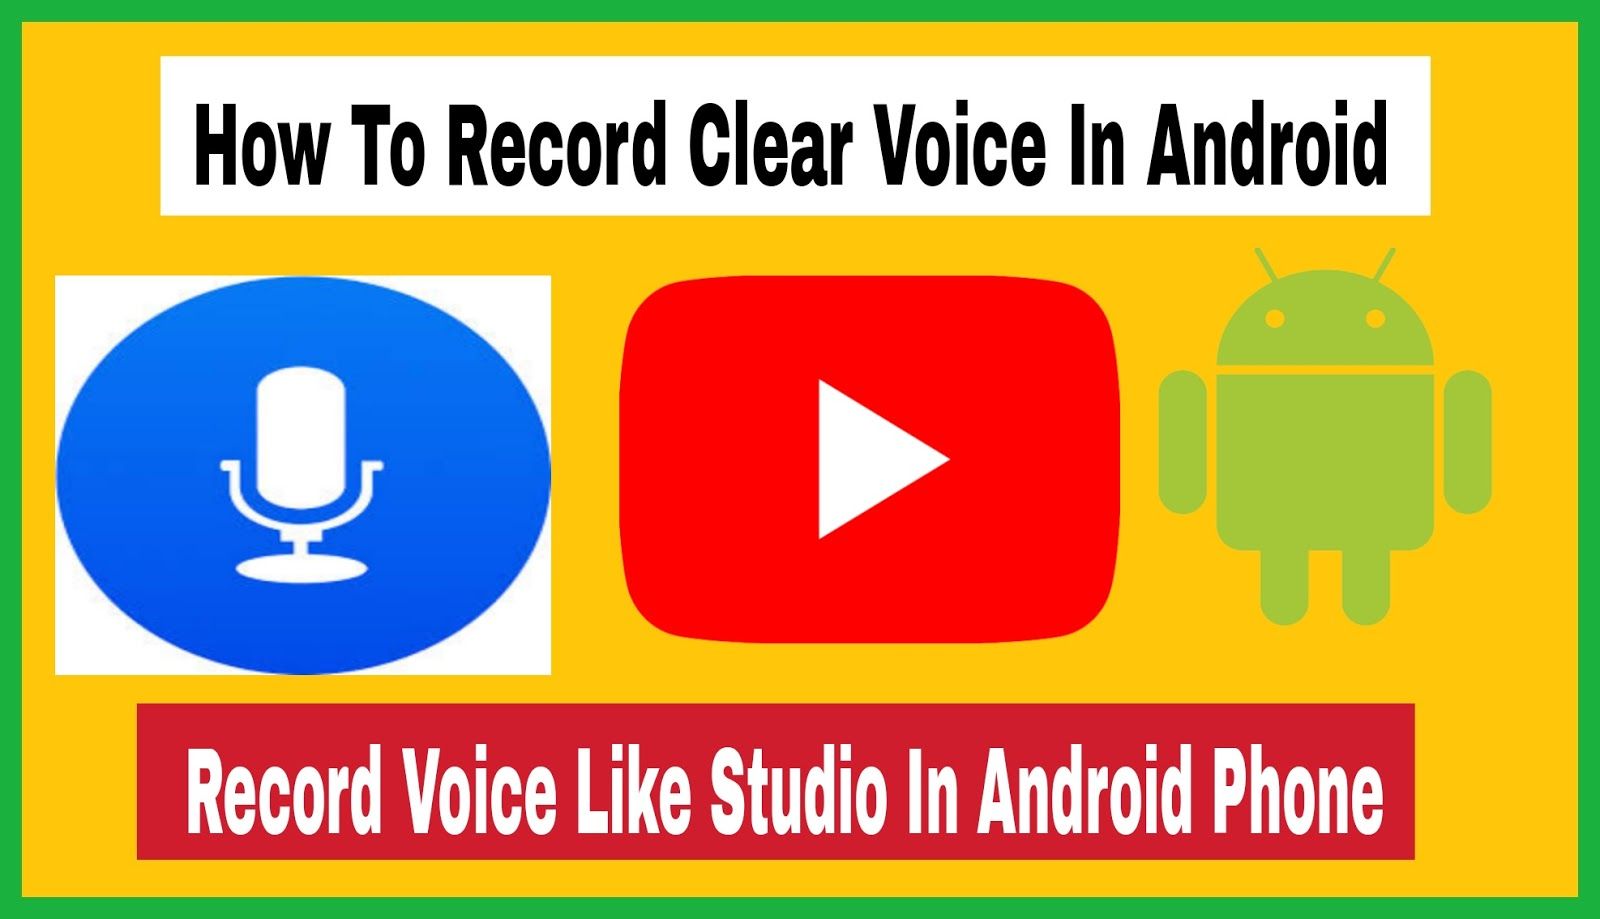 How To Record Clear Voice In Android